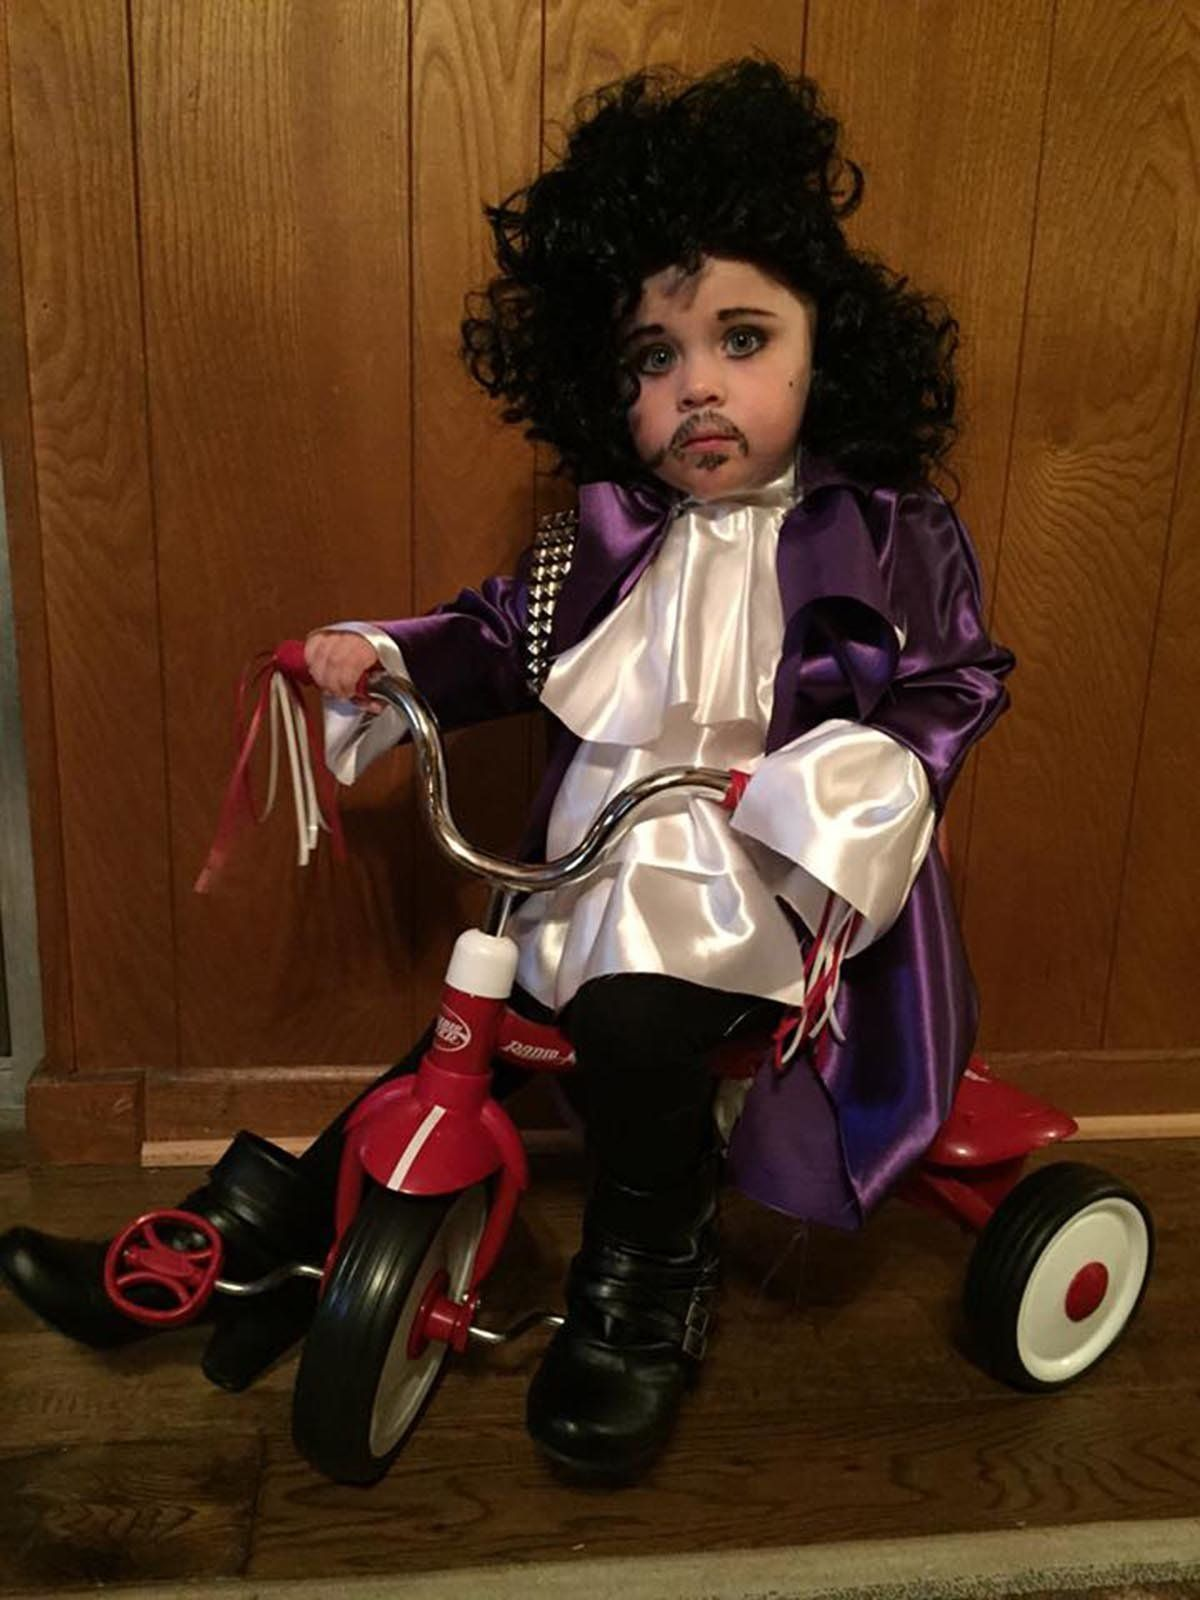 sc 1 st  HuffPost & 37 Pop Culture Halloween Costumes For Kids Who Are Too Cool | HuffPost